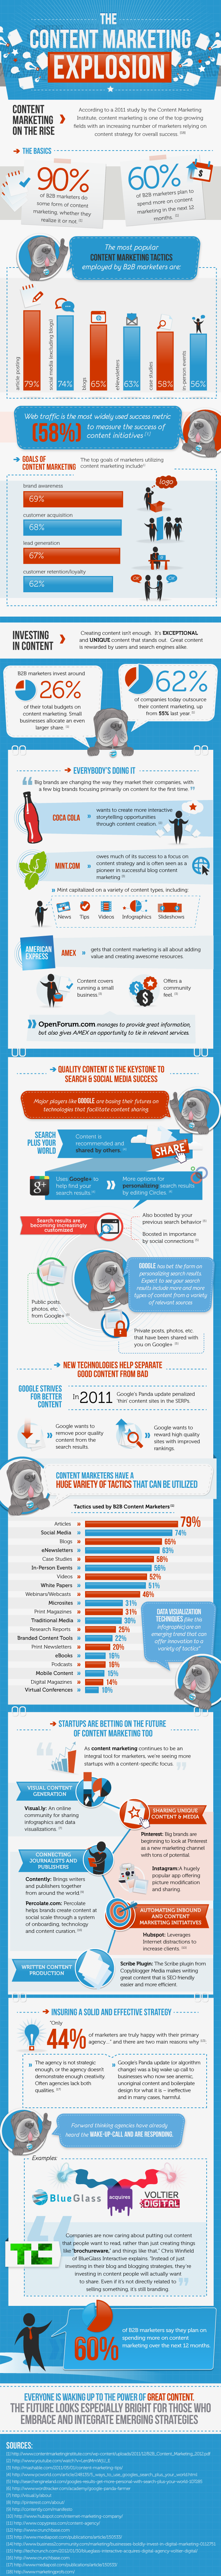 The Content Marketing Explosion (2012) by BLueGlass/Voltier Digital